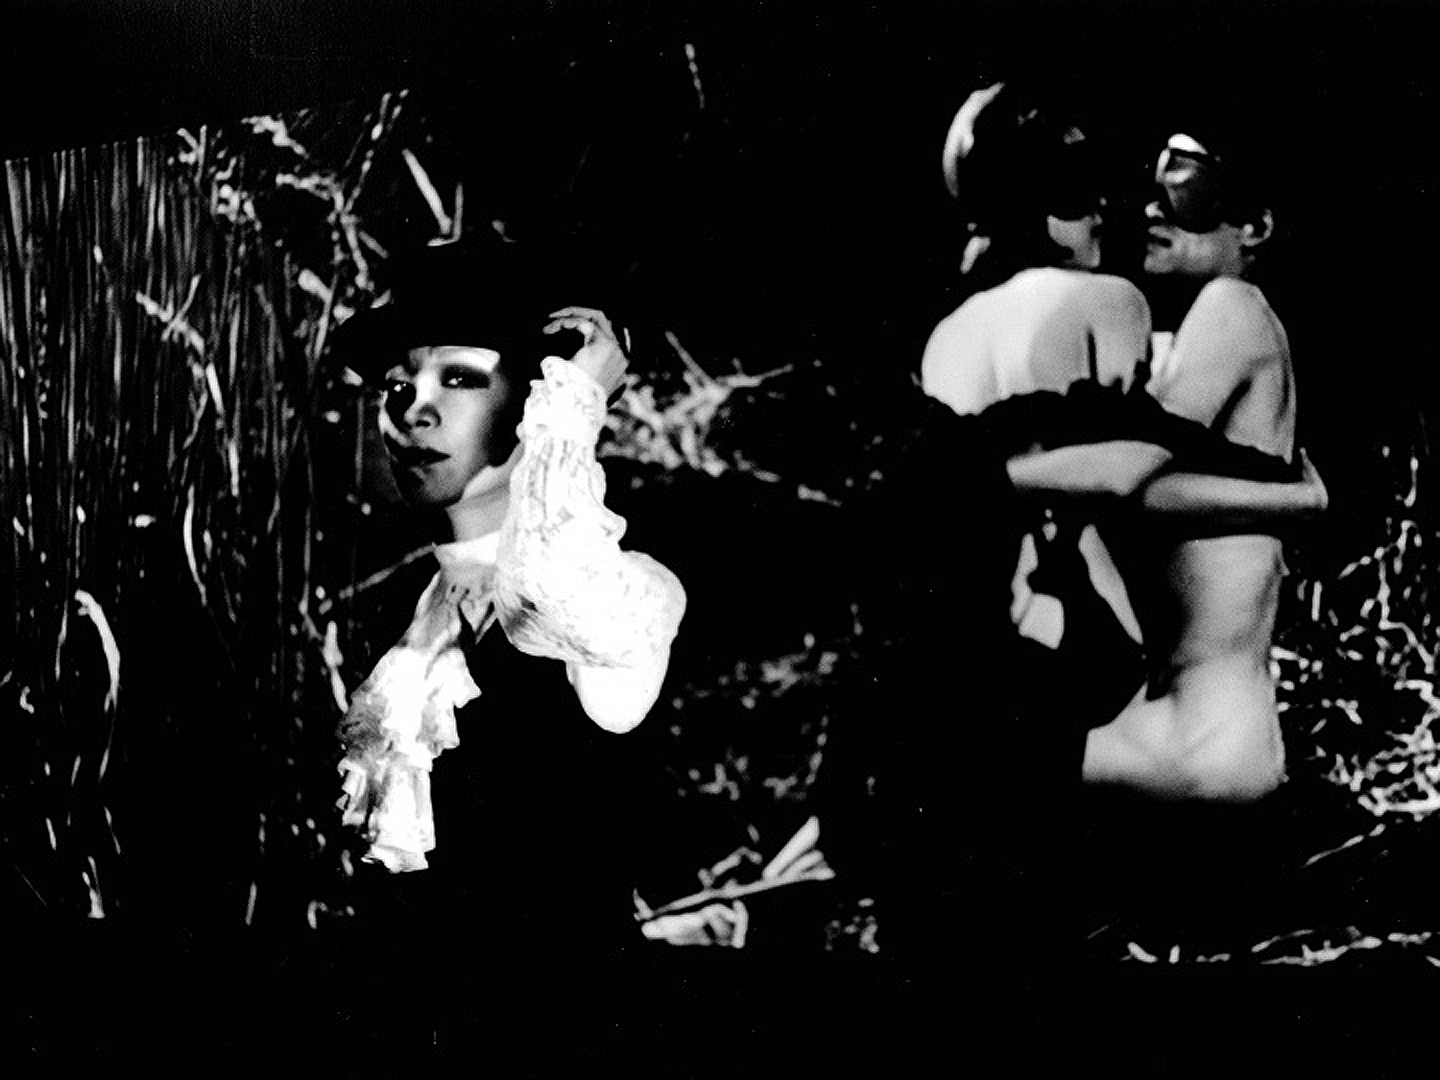 Daido Moriyama: Nagisa, Limited Edition (with Print Version B) [SIGNED]